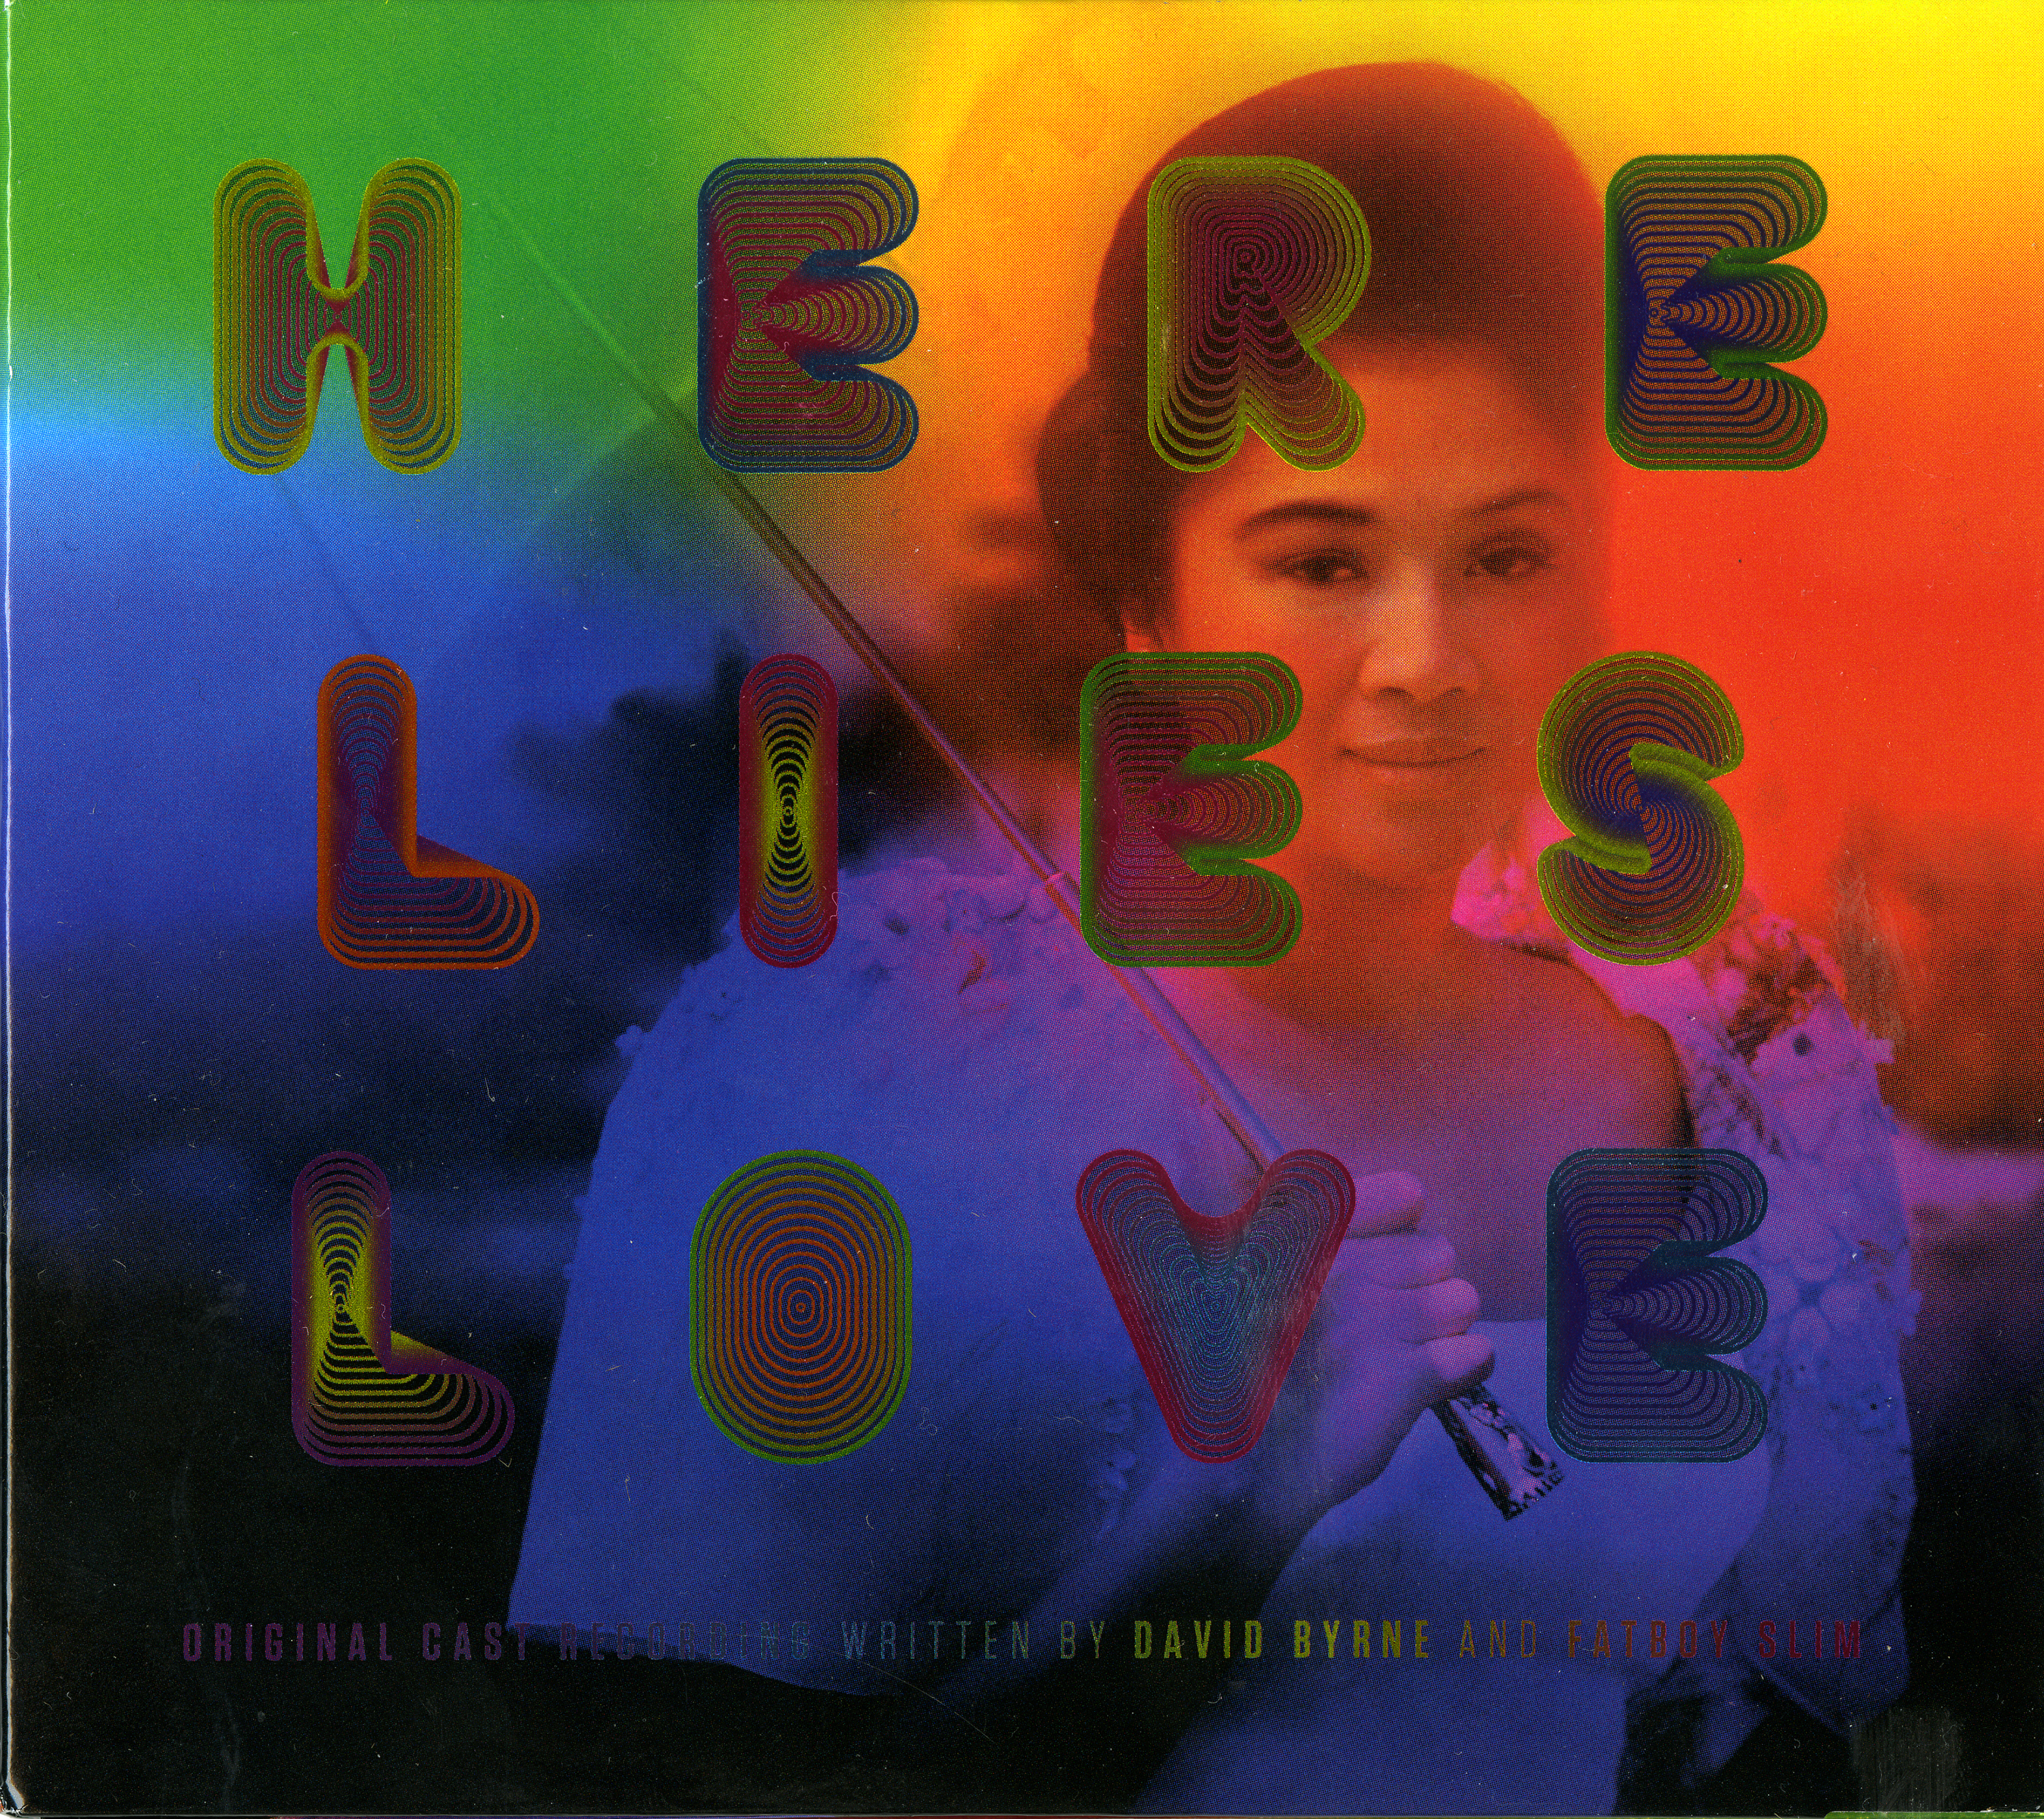 Here Lies Love CD packaging, 2014.